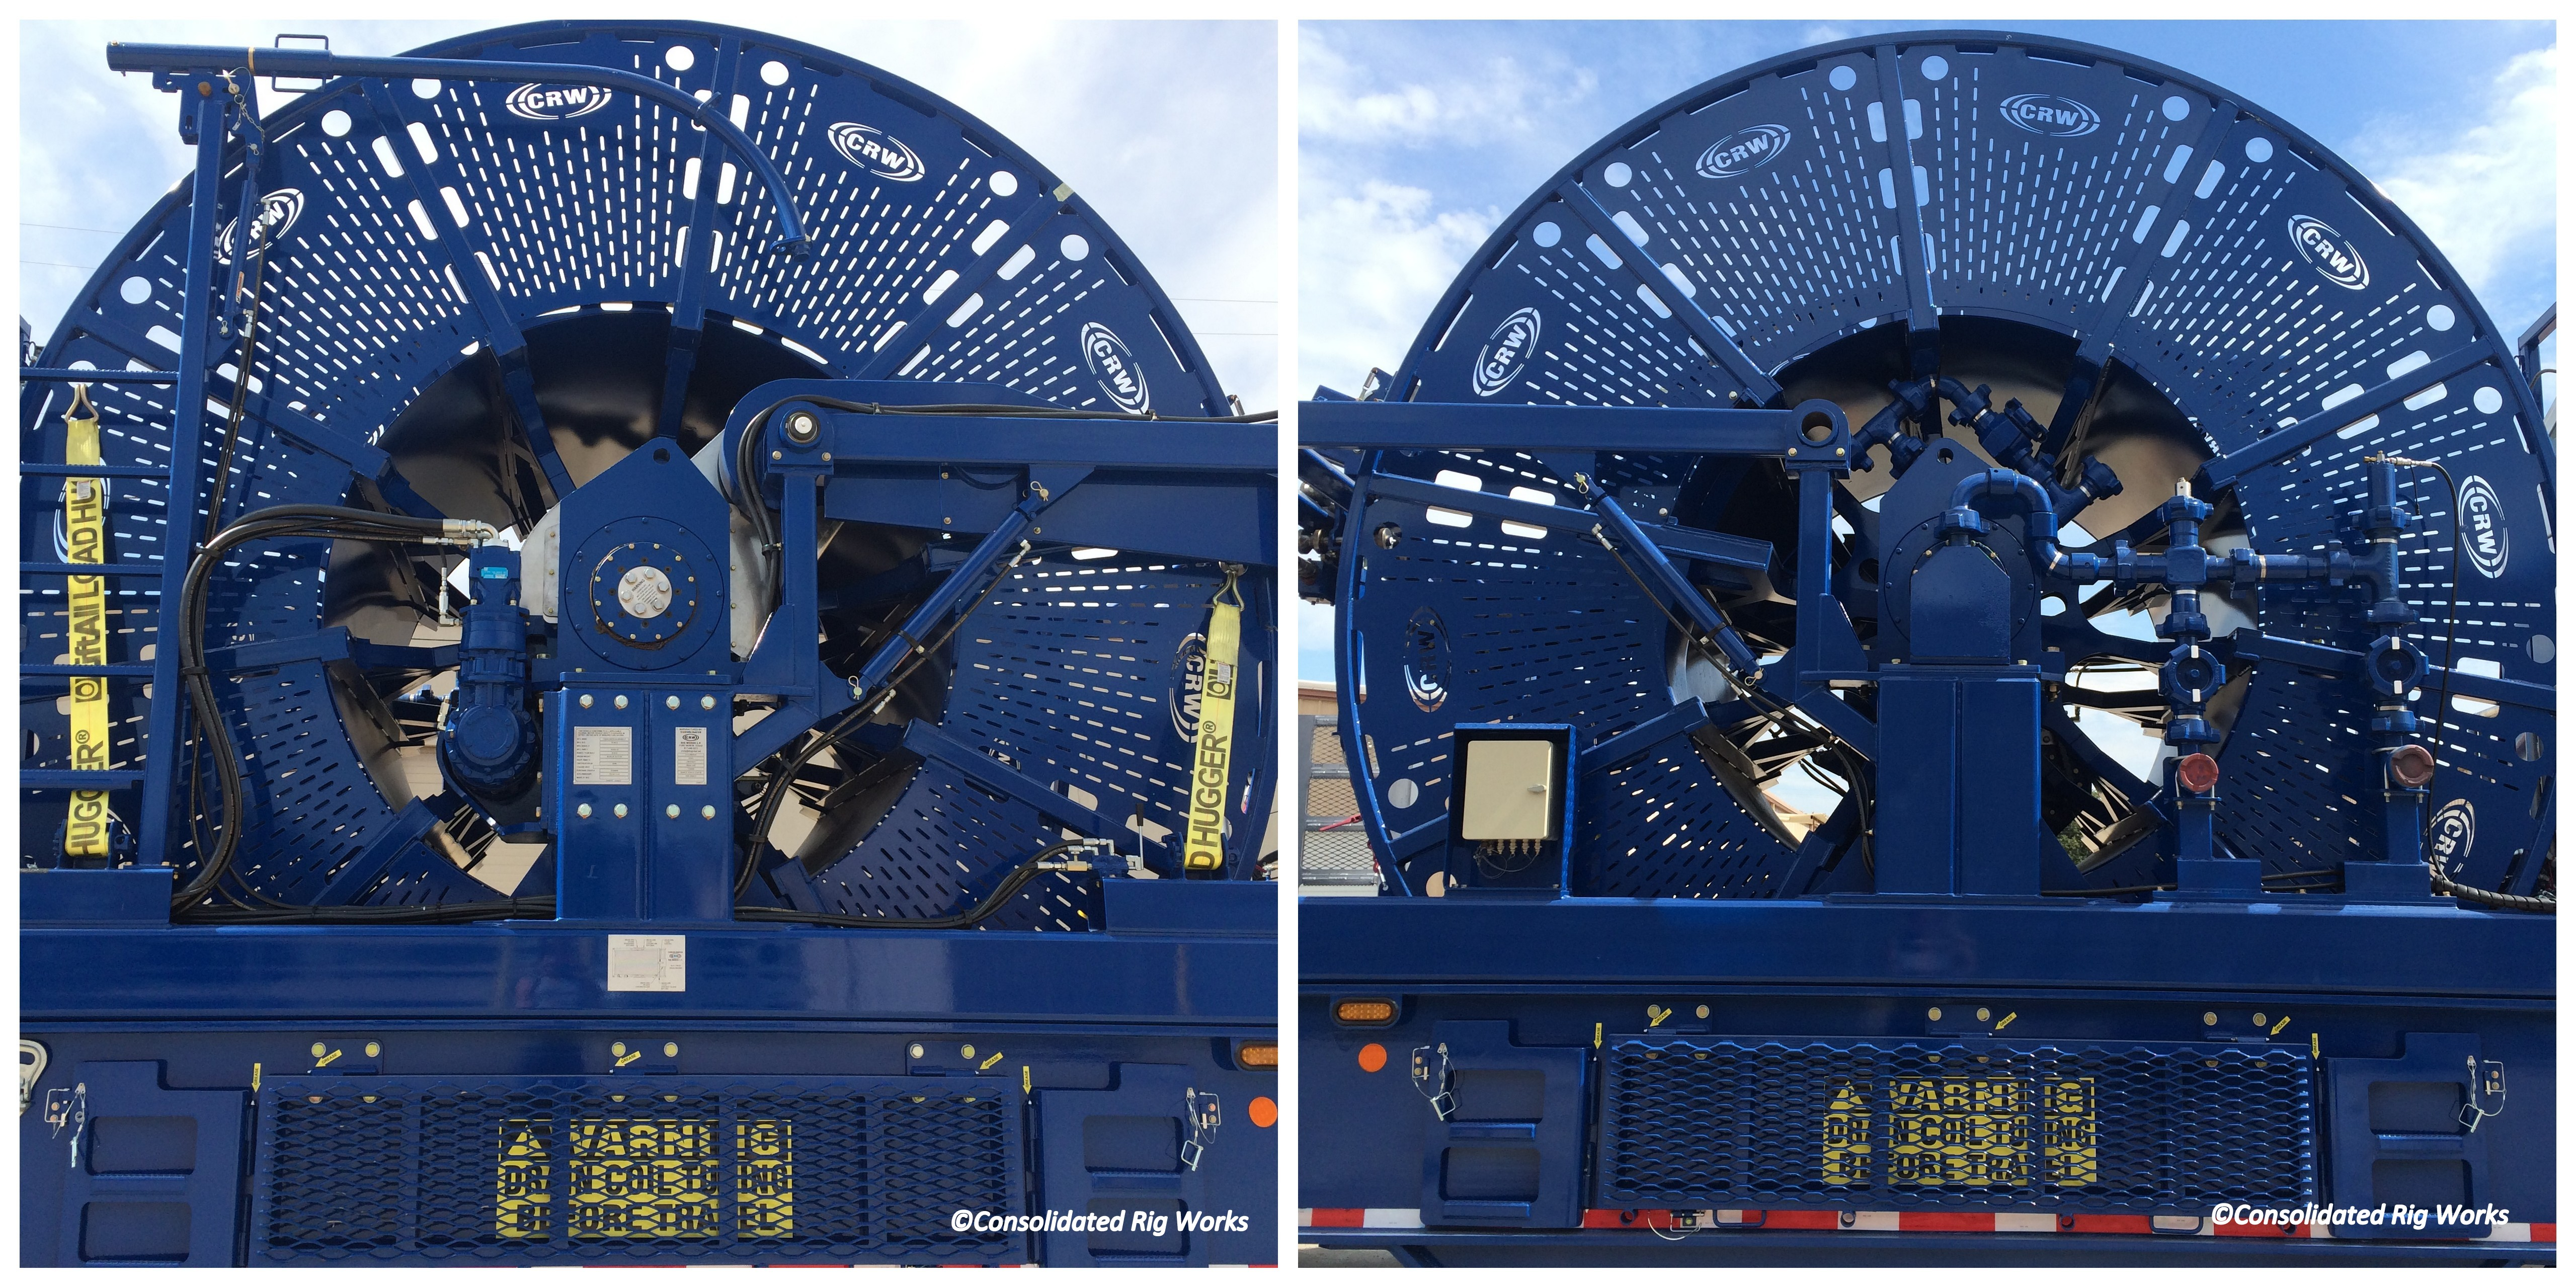 Coil Tubing Units Reel : Tubing reels consolidated rig works lp